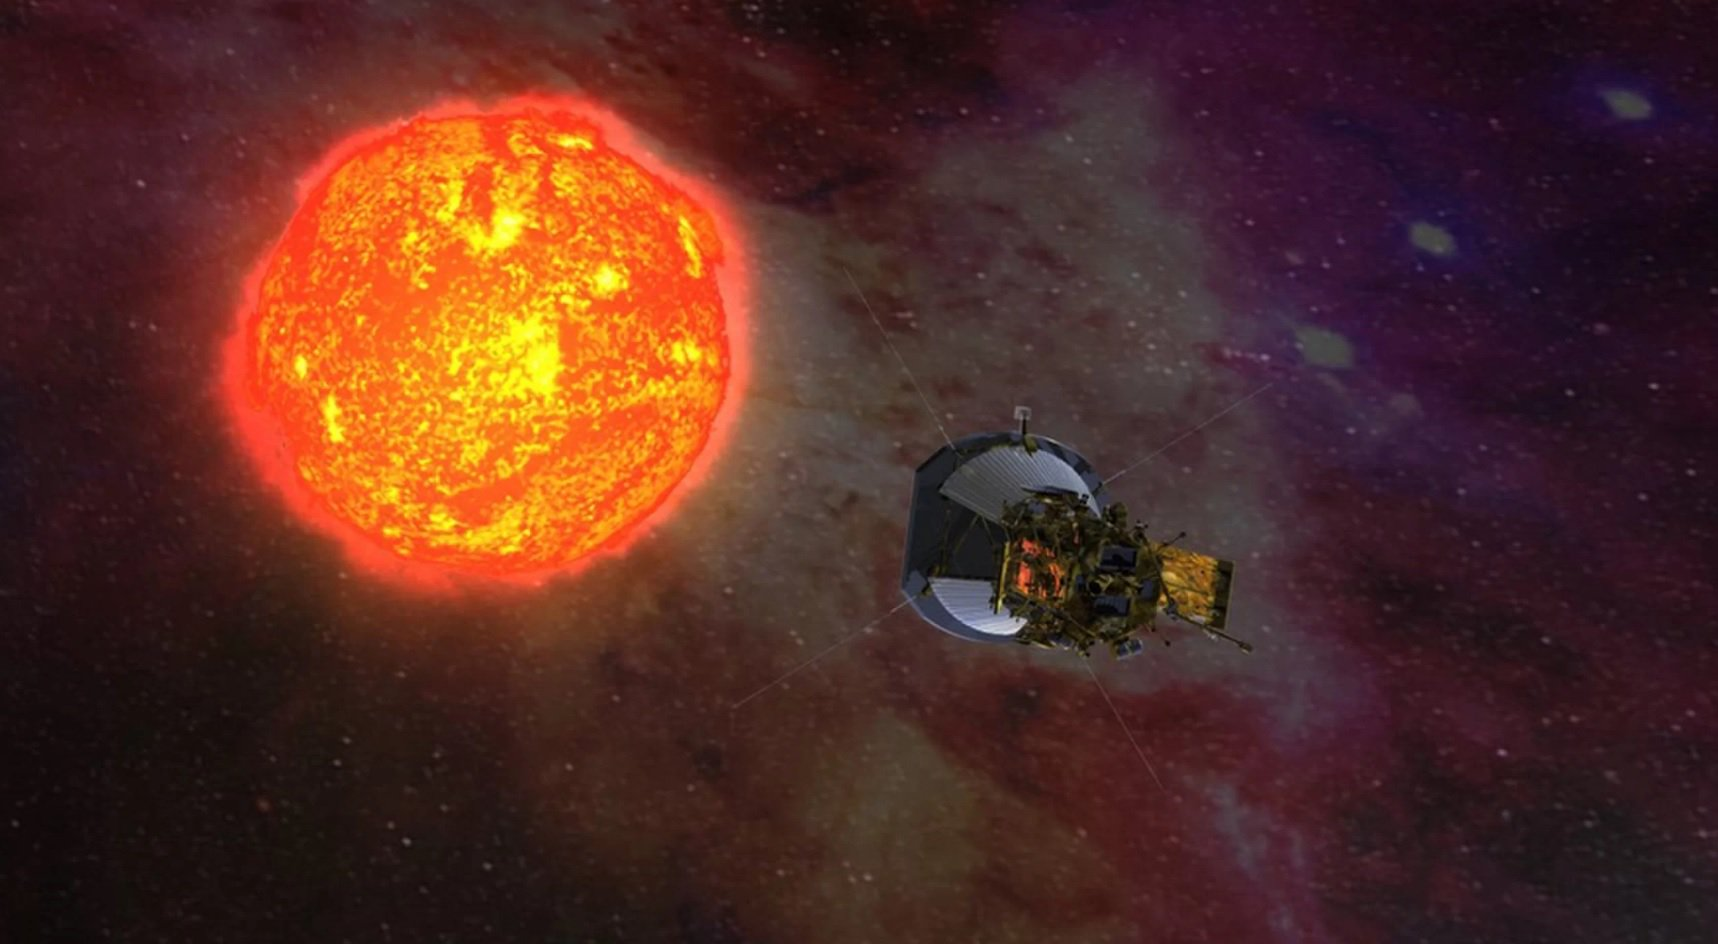 Solar probe Parker broke several records